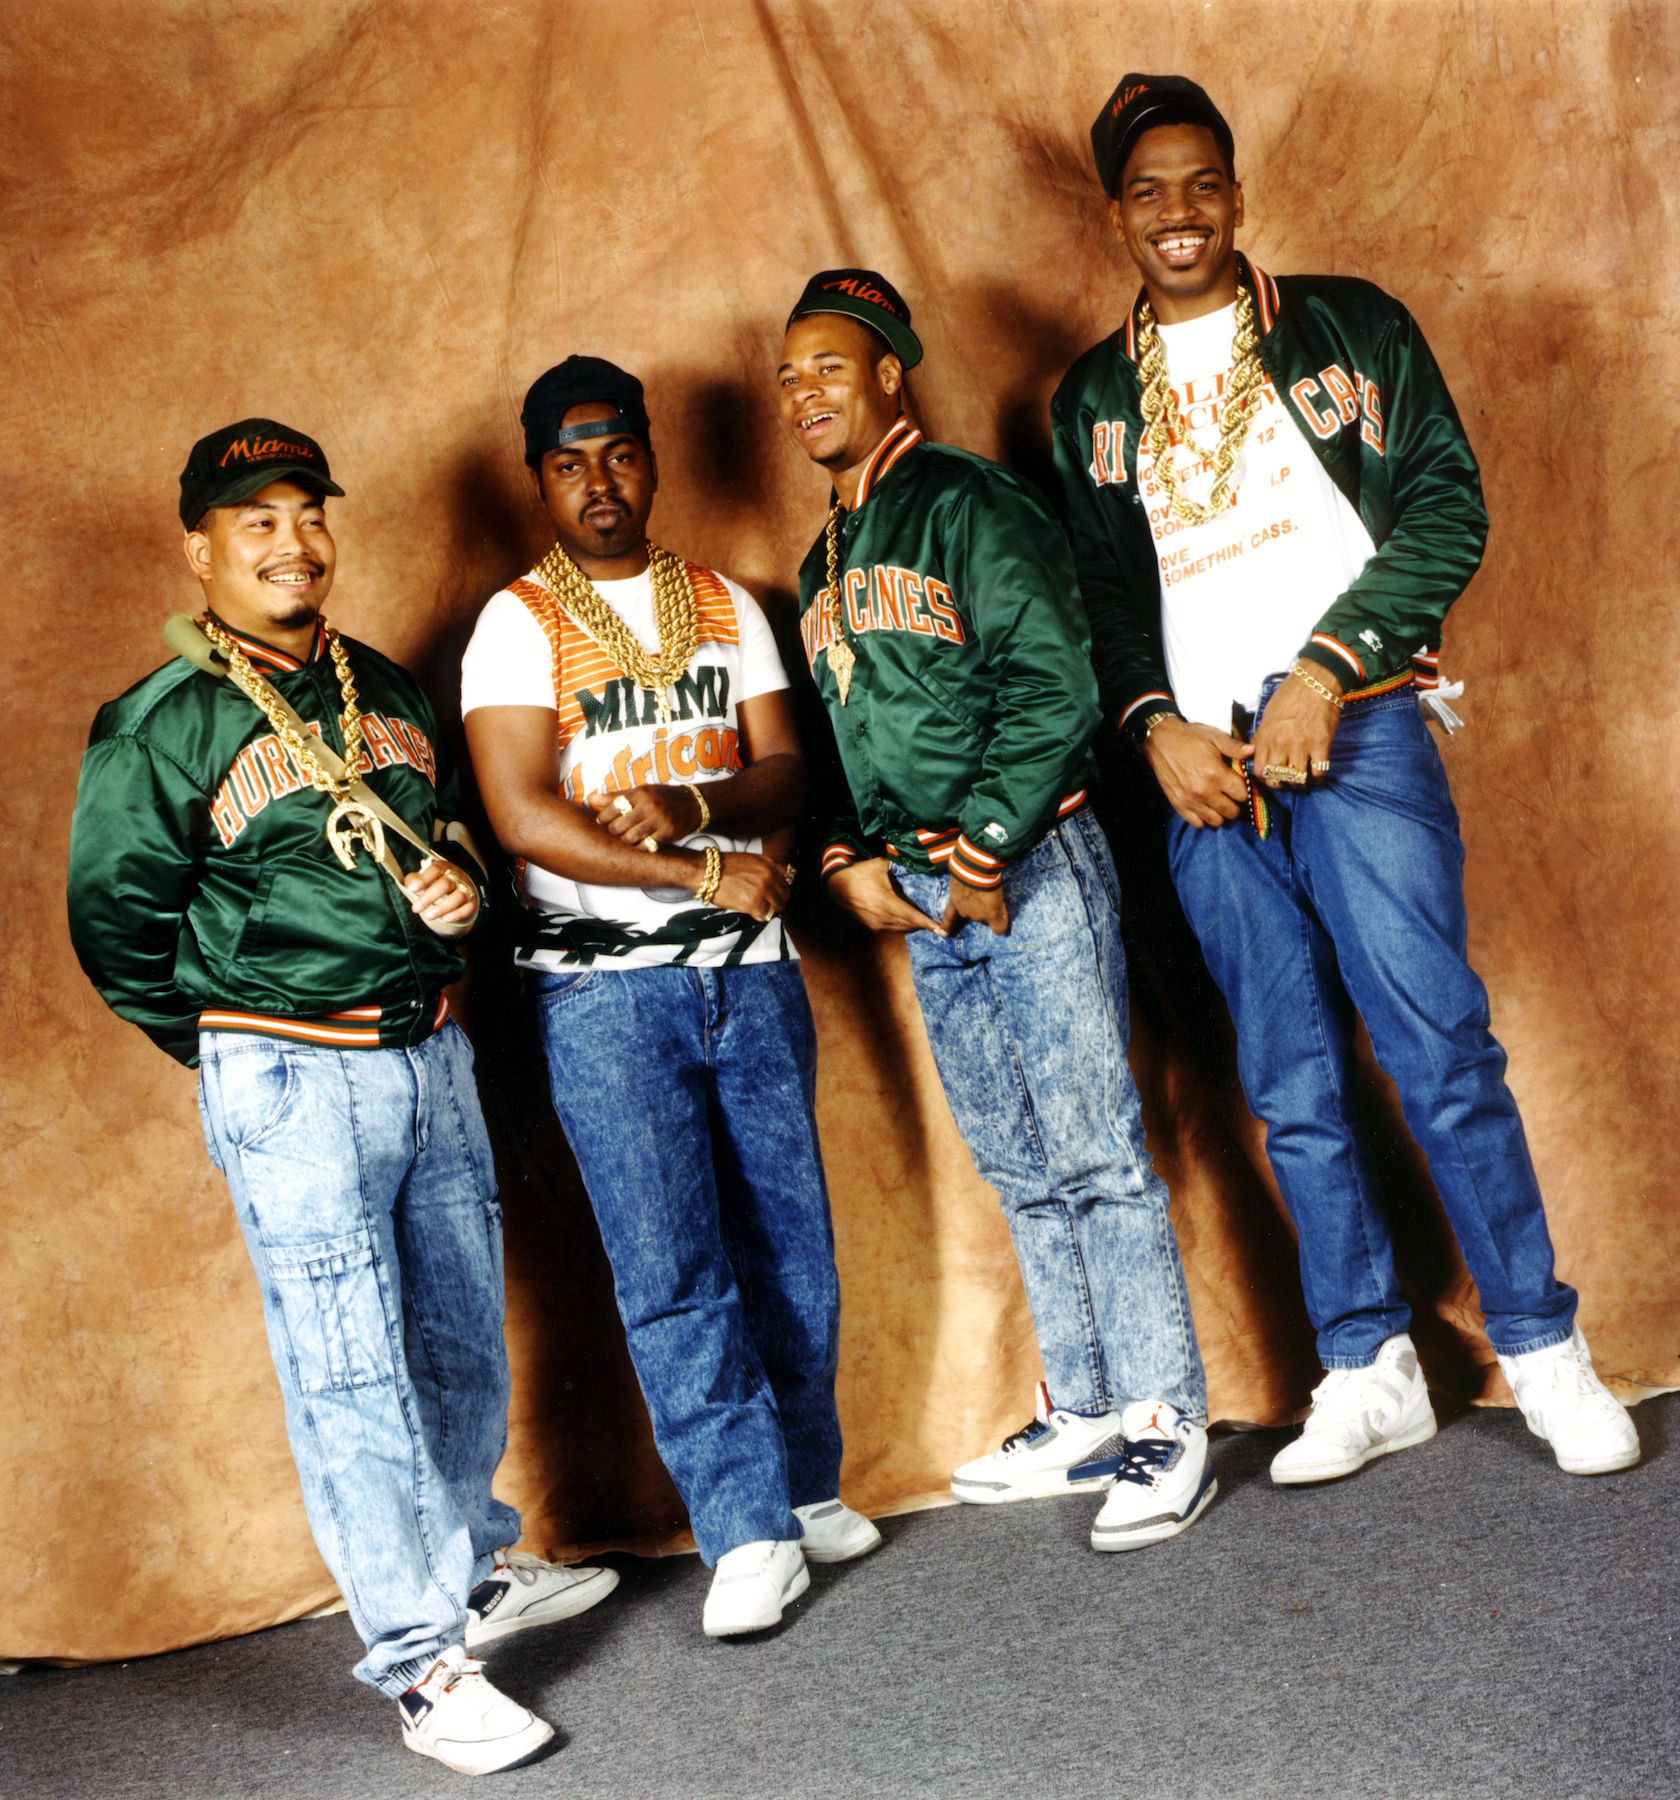 Miami's 2 Live Crew story to become a movie